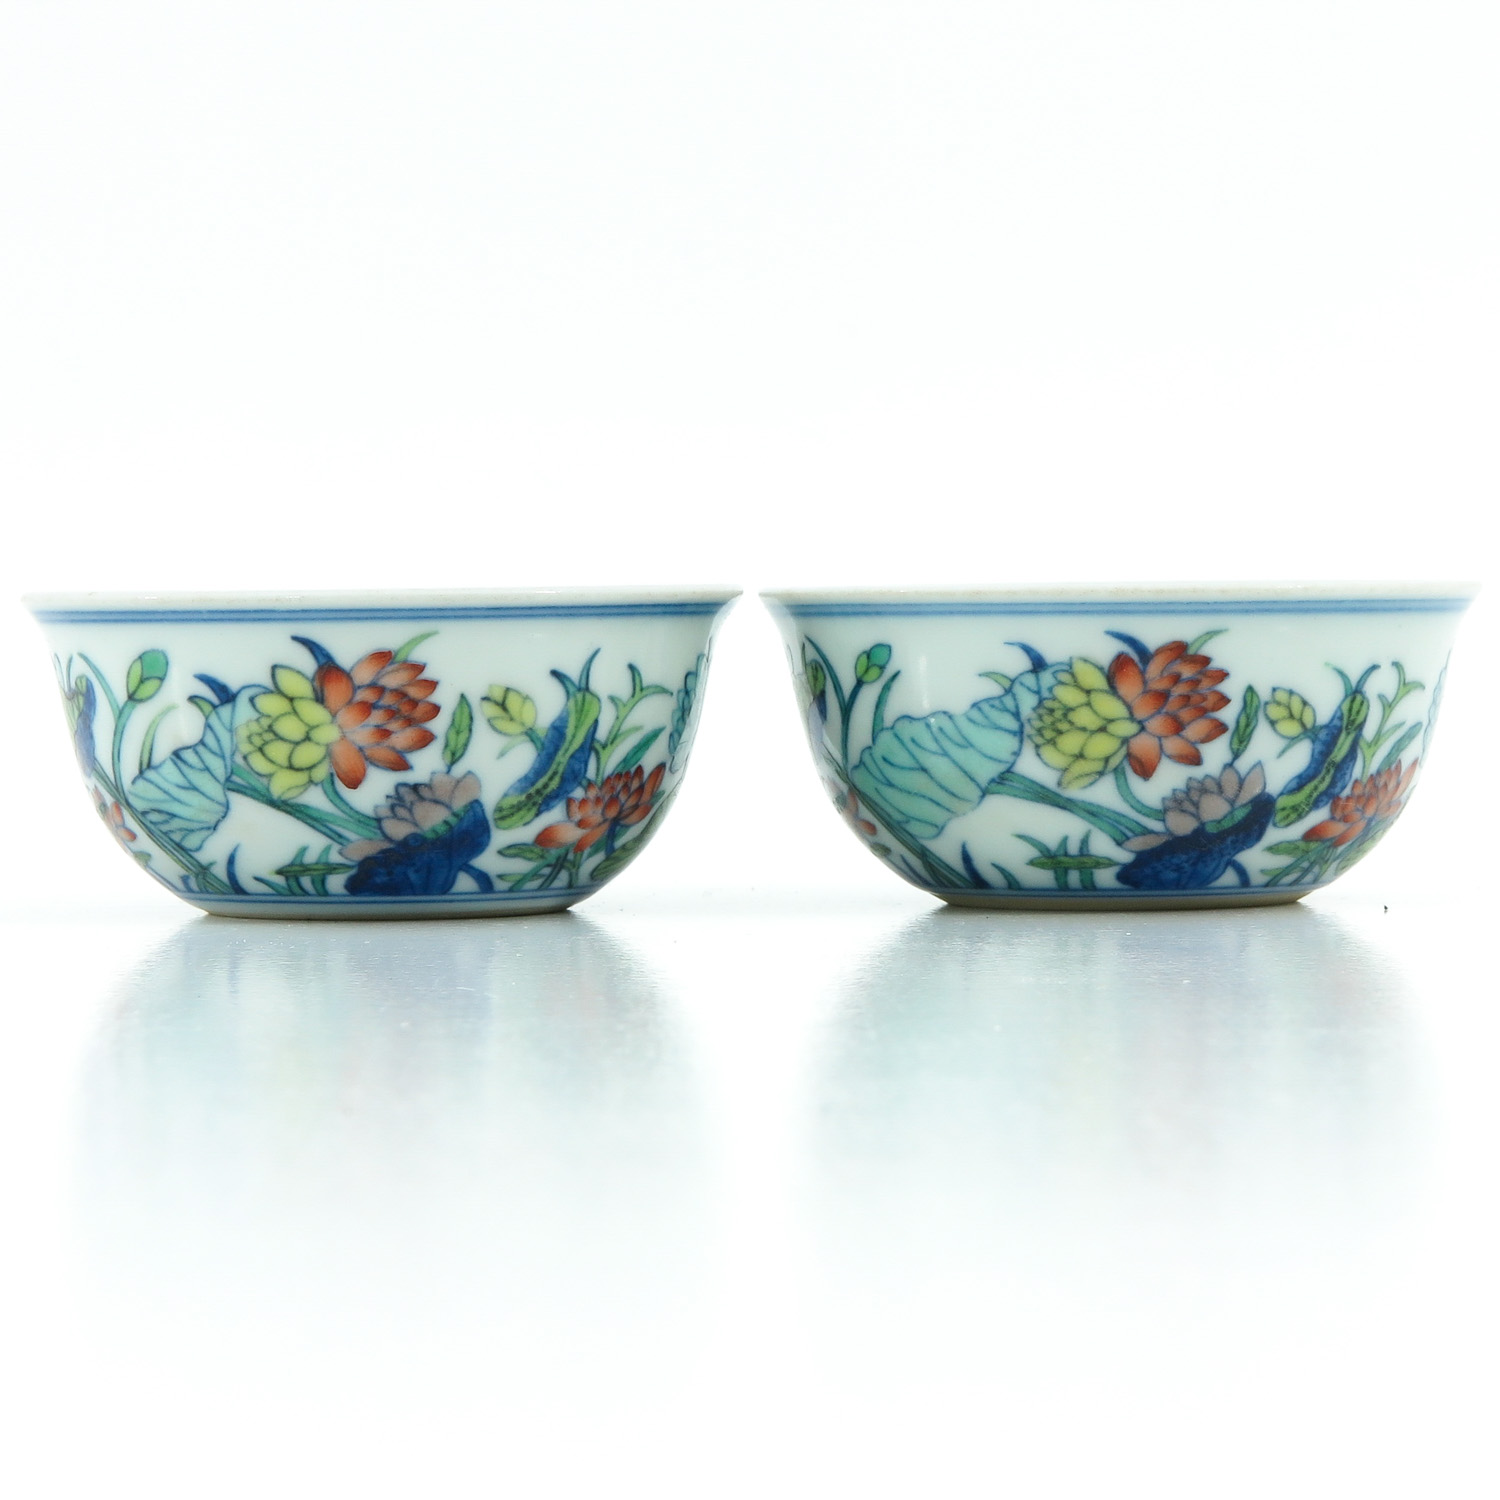 A Pair of Doucai Decor Cups - Image 2 of 10